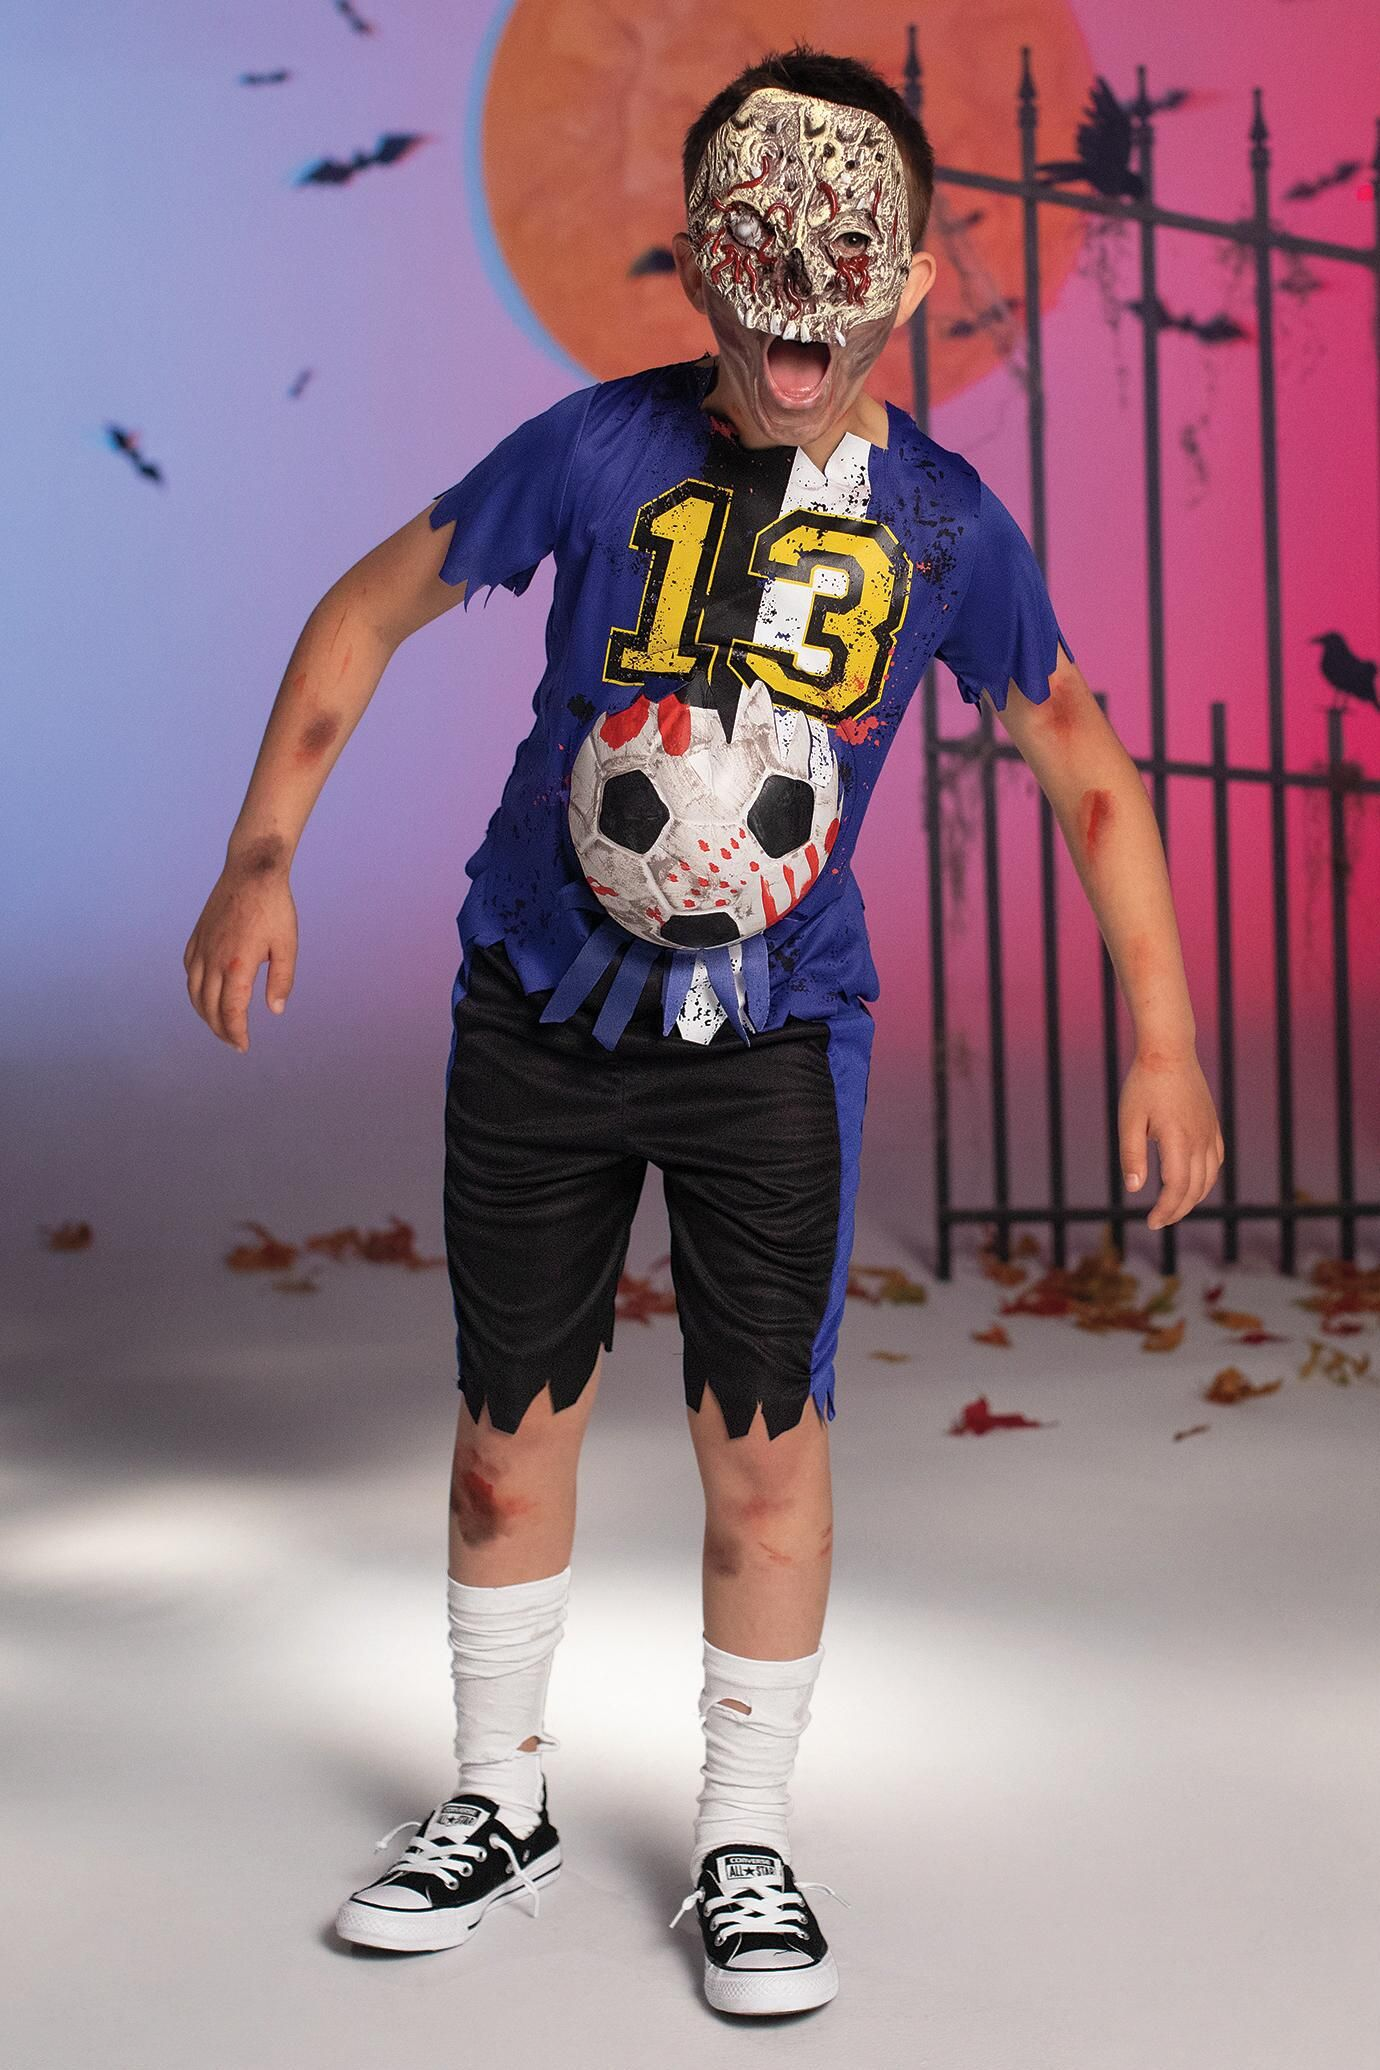 Zombie Soccer Player Costume For Kids Chasing Fireflies Soccer Player Costume Kids Costumes Firefly Fashion